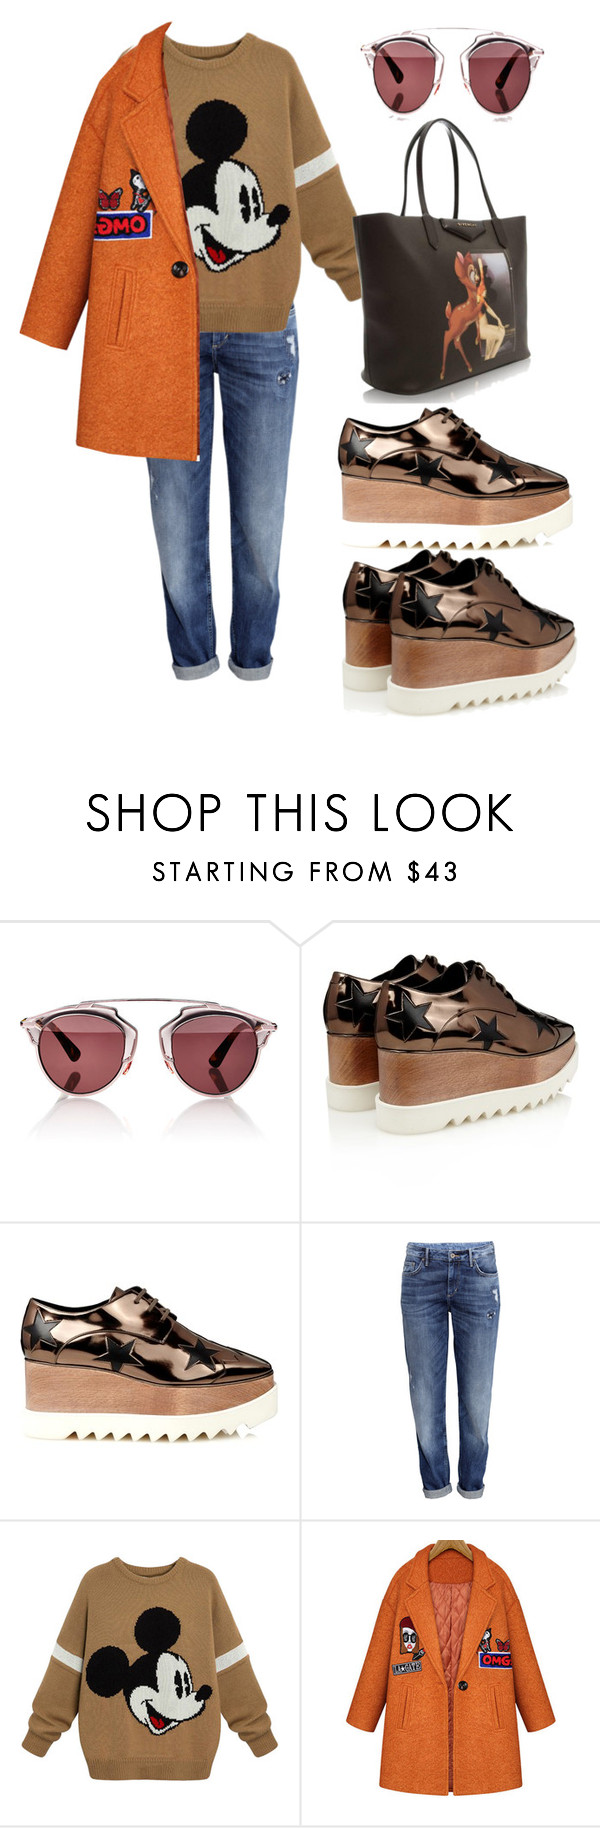 """""""Untitled #95"""" by ana-aleta ❤ liked on Polyvore featuring mode, Christian Dior, STELLA McCARTNEY, H&M, Givenchy, women's clothing, women, female, woman en misses"""